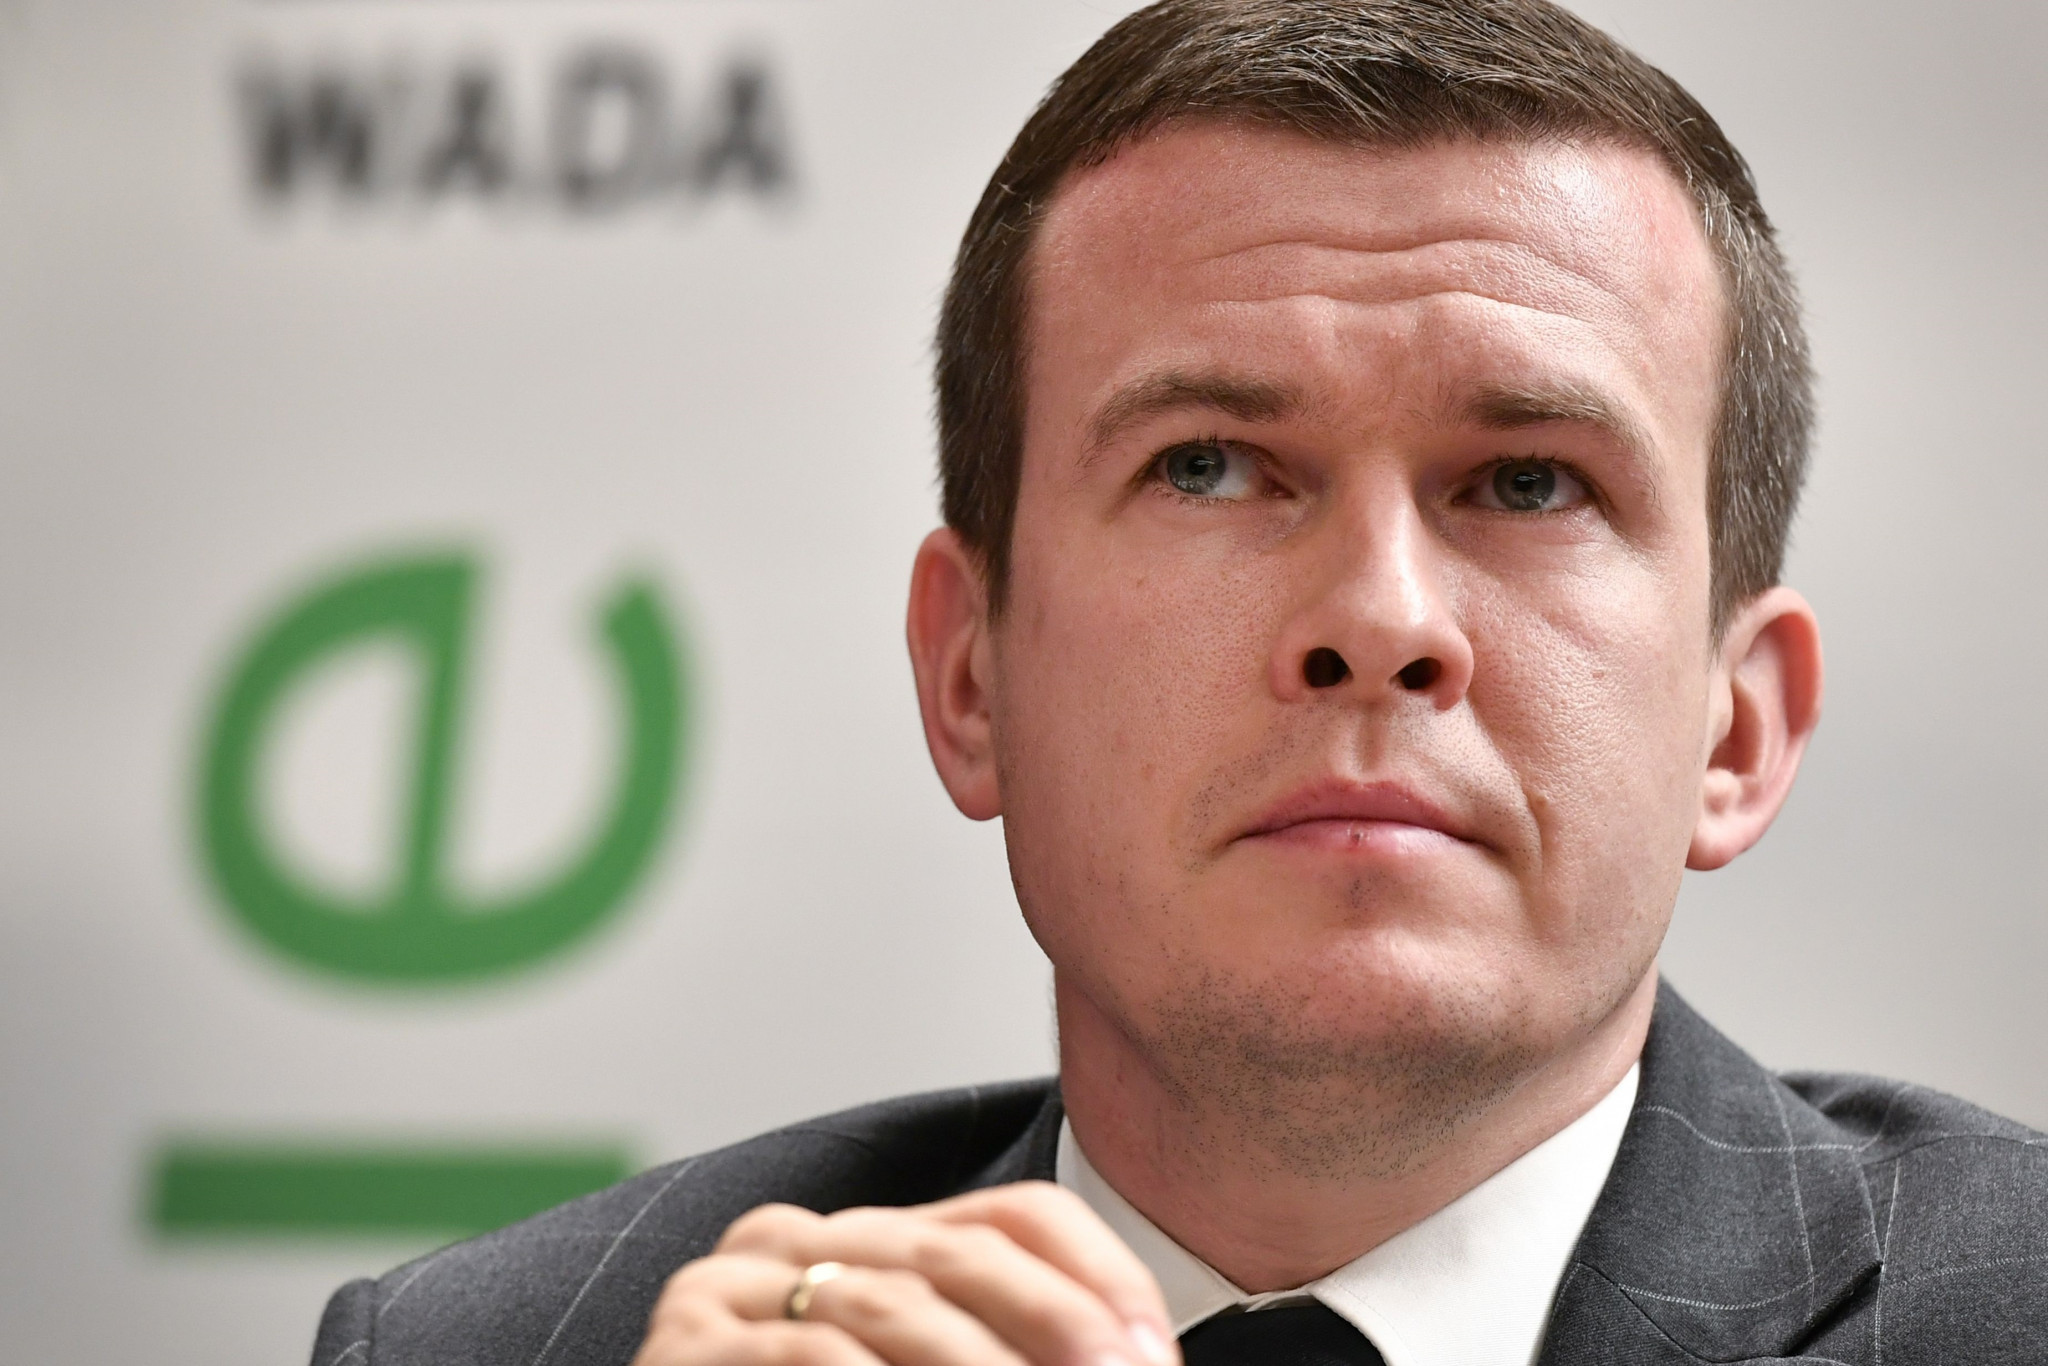 WADA President suggests US funding threat could impact athletes' participation at events